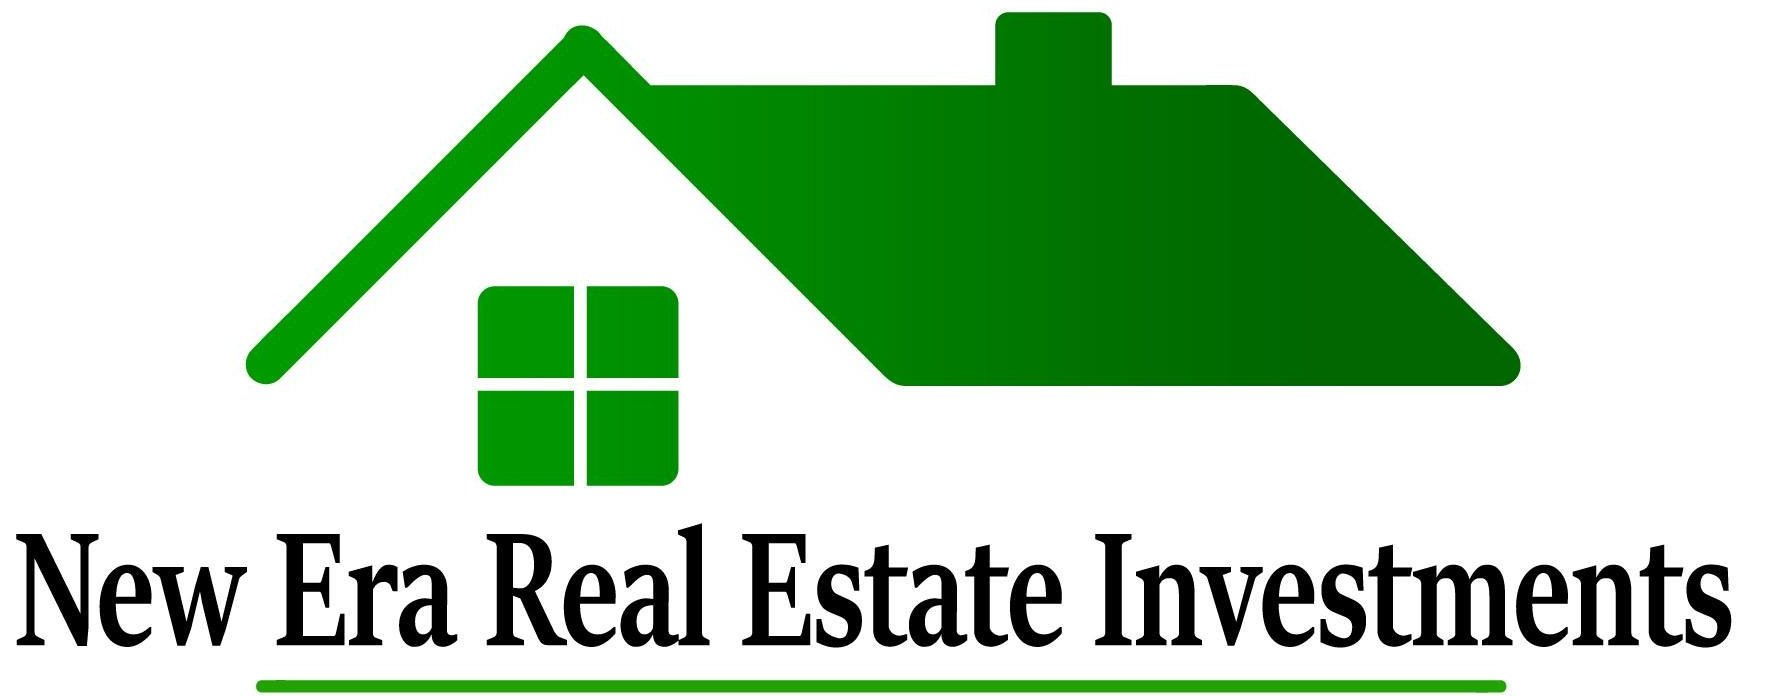 Frequently asked questions new era real estate investments new era real estate investments logo solutioingenieria Choice Image